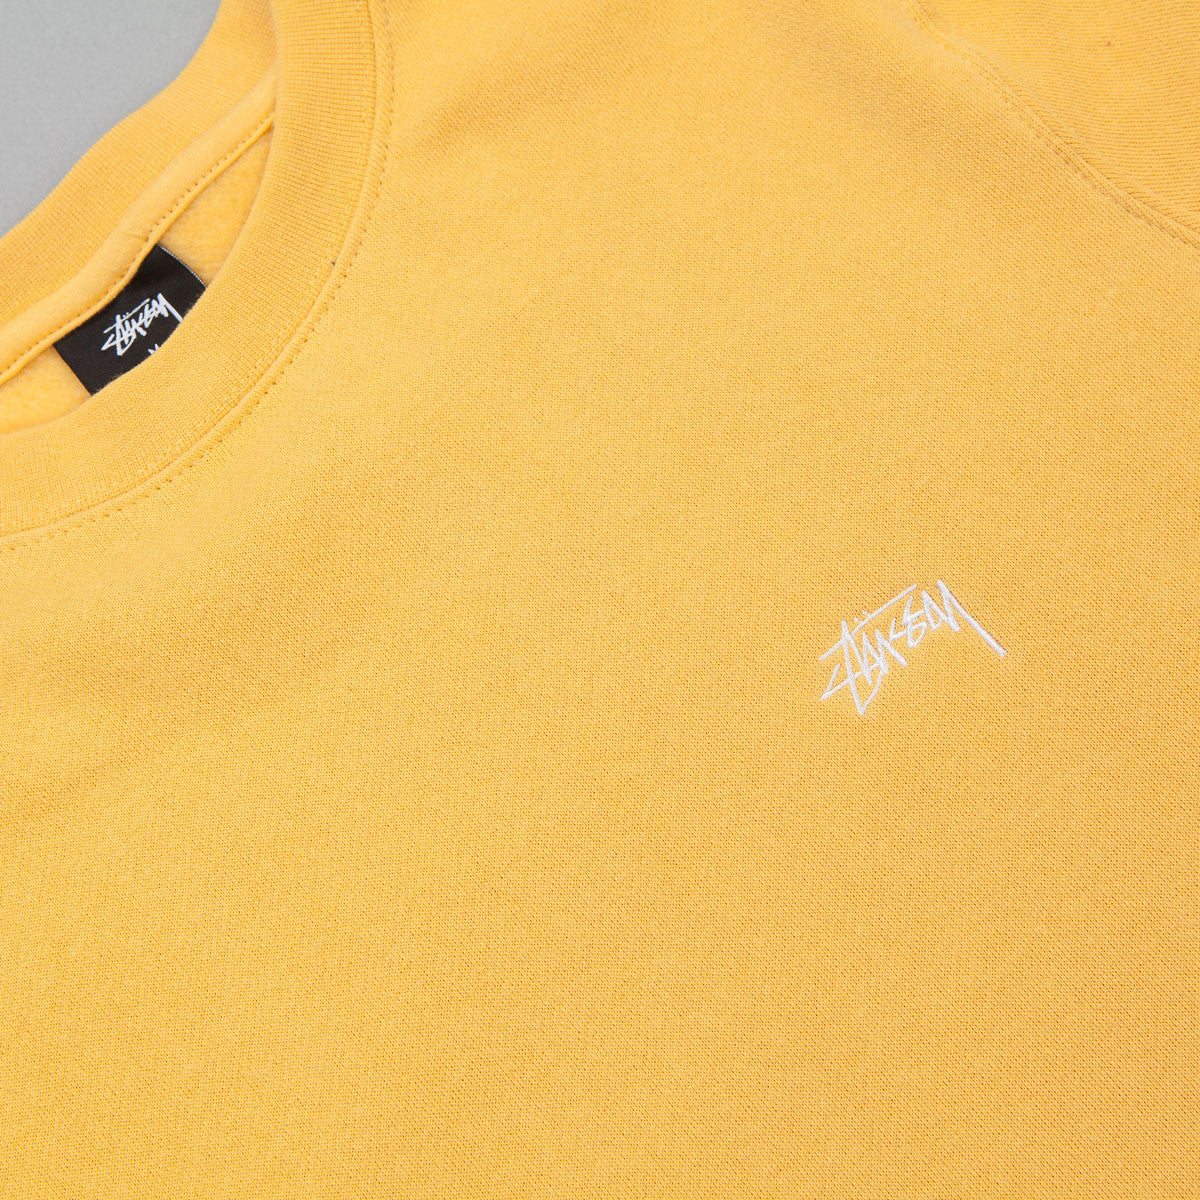 Stussy Back Arc Crewneck Sweatshirt - Faded Yellow